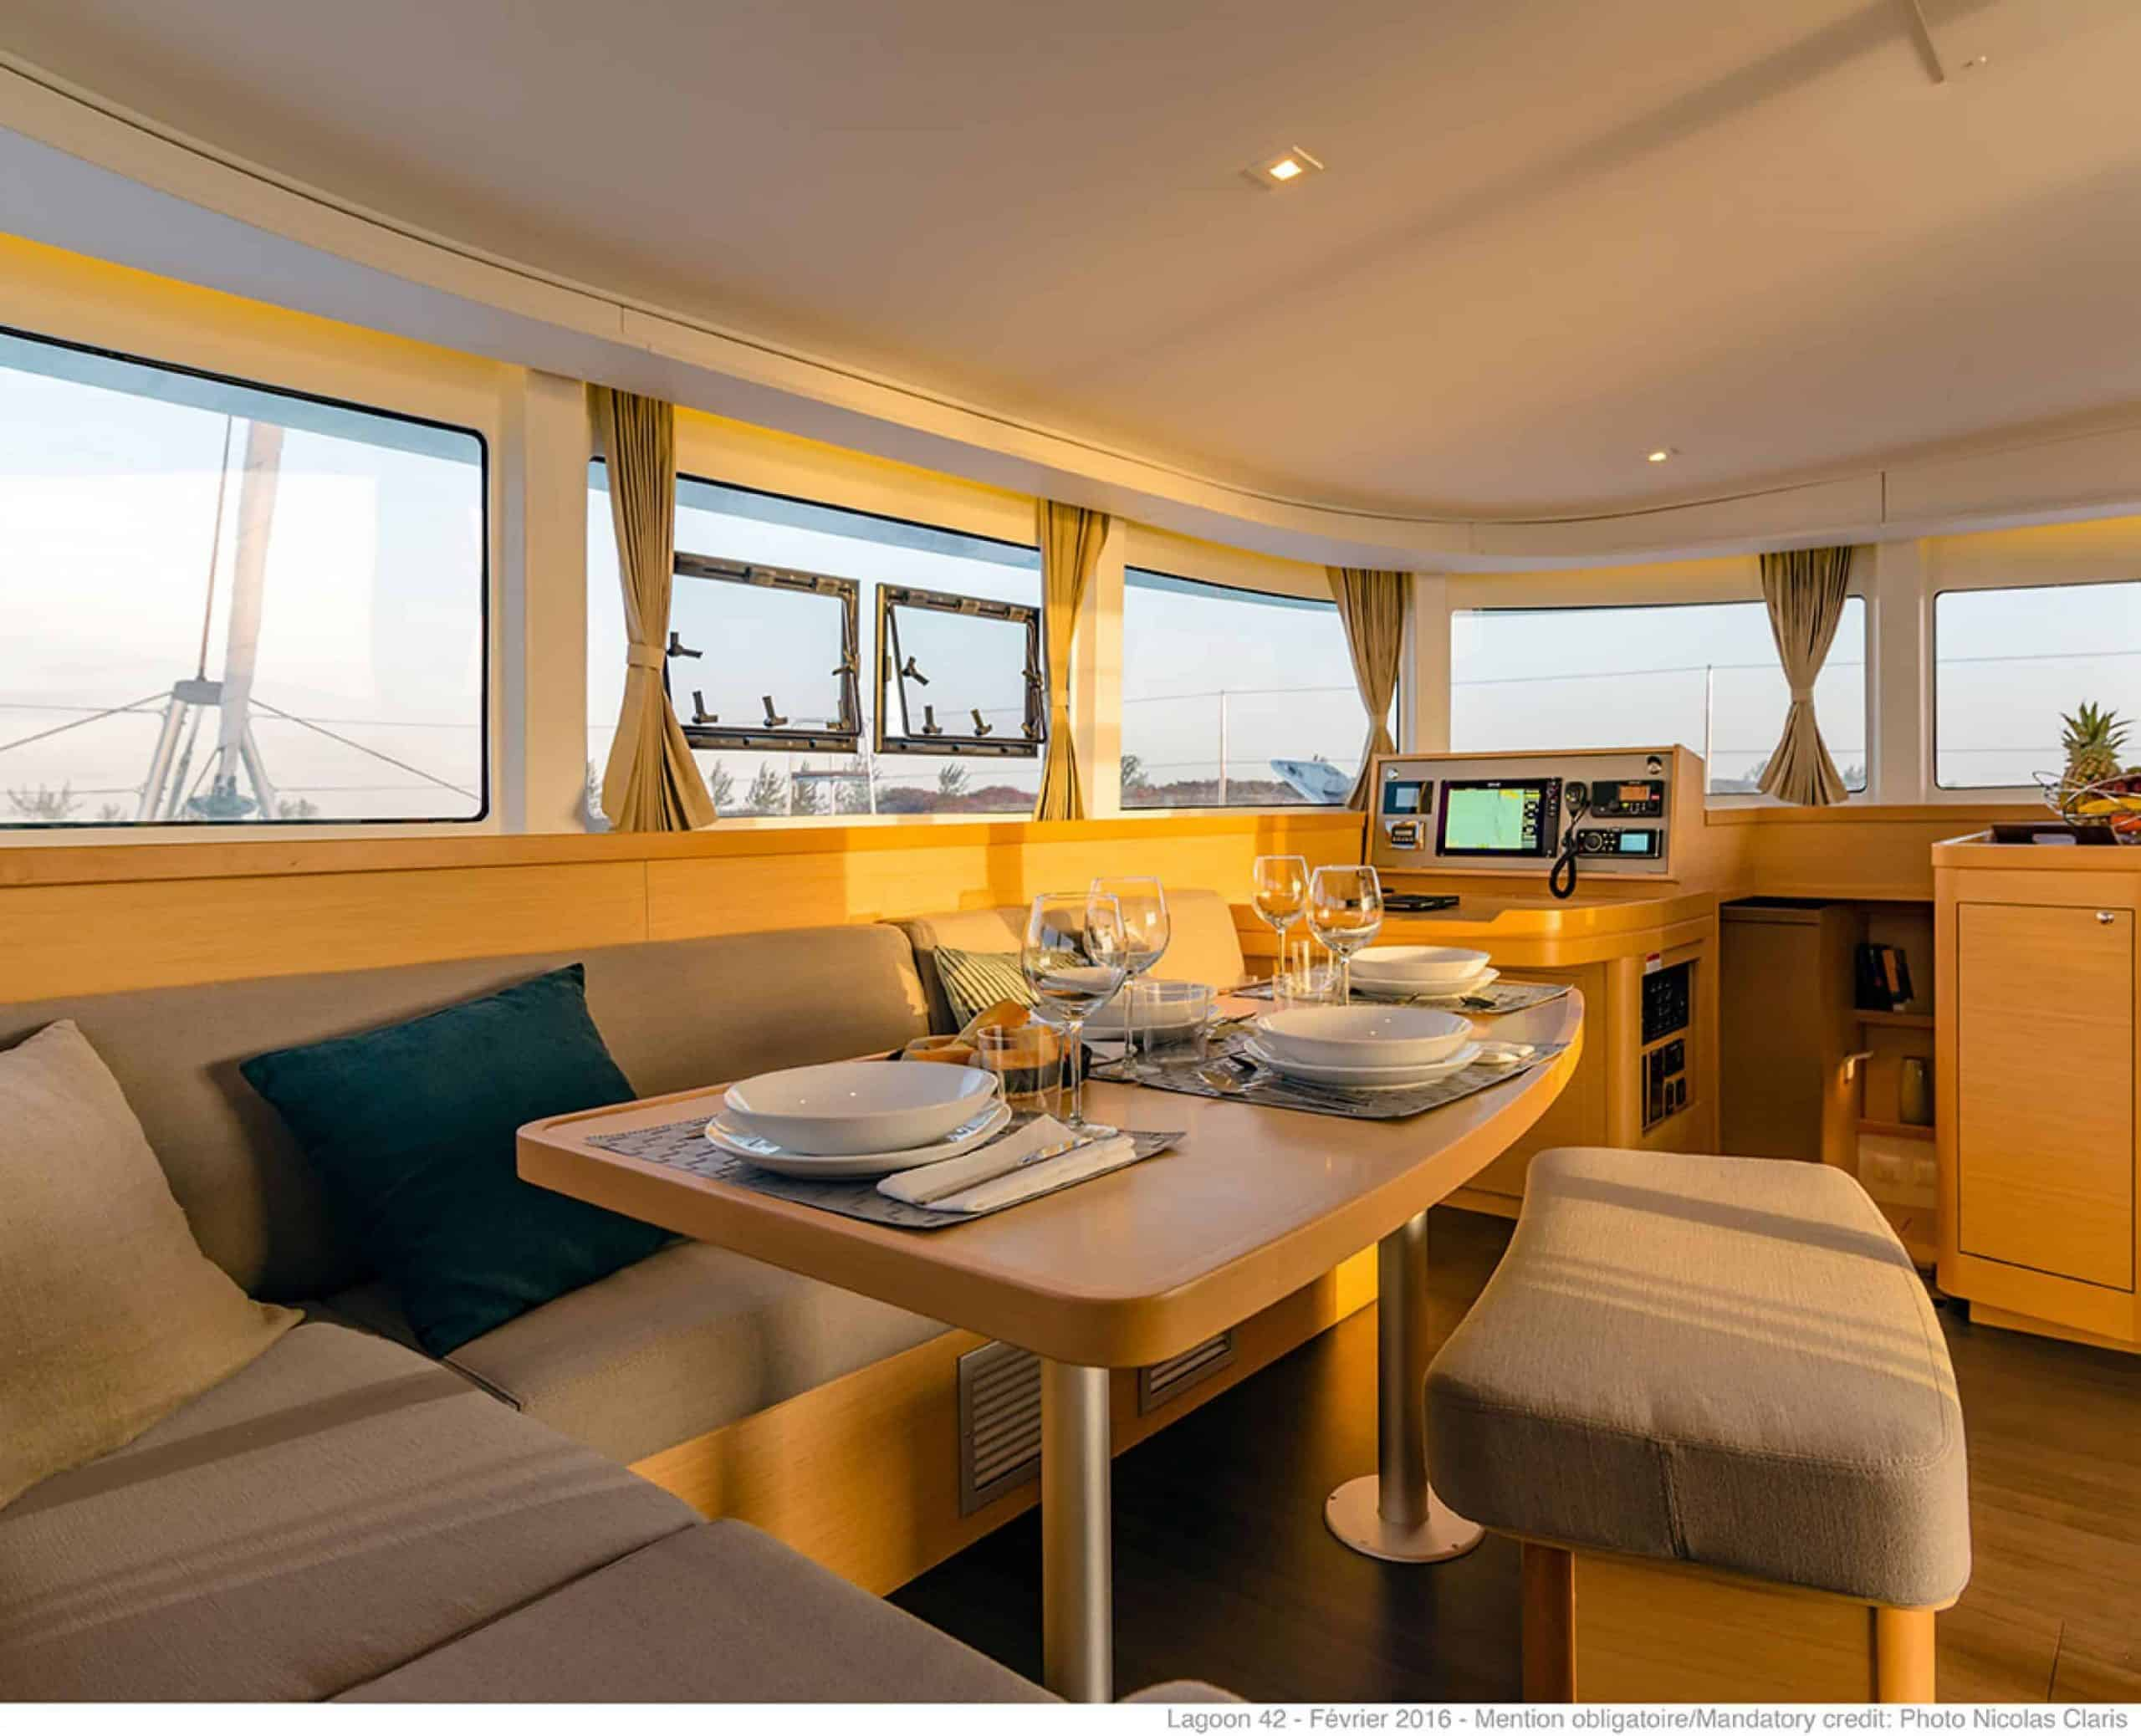 Saloon and navigation area of the lagoon 42.